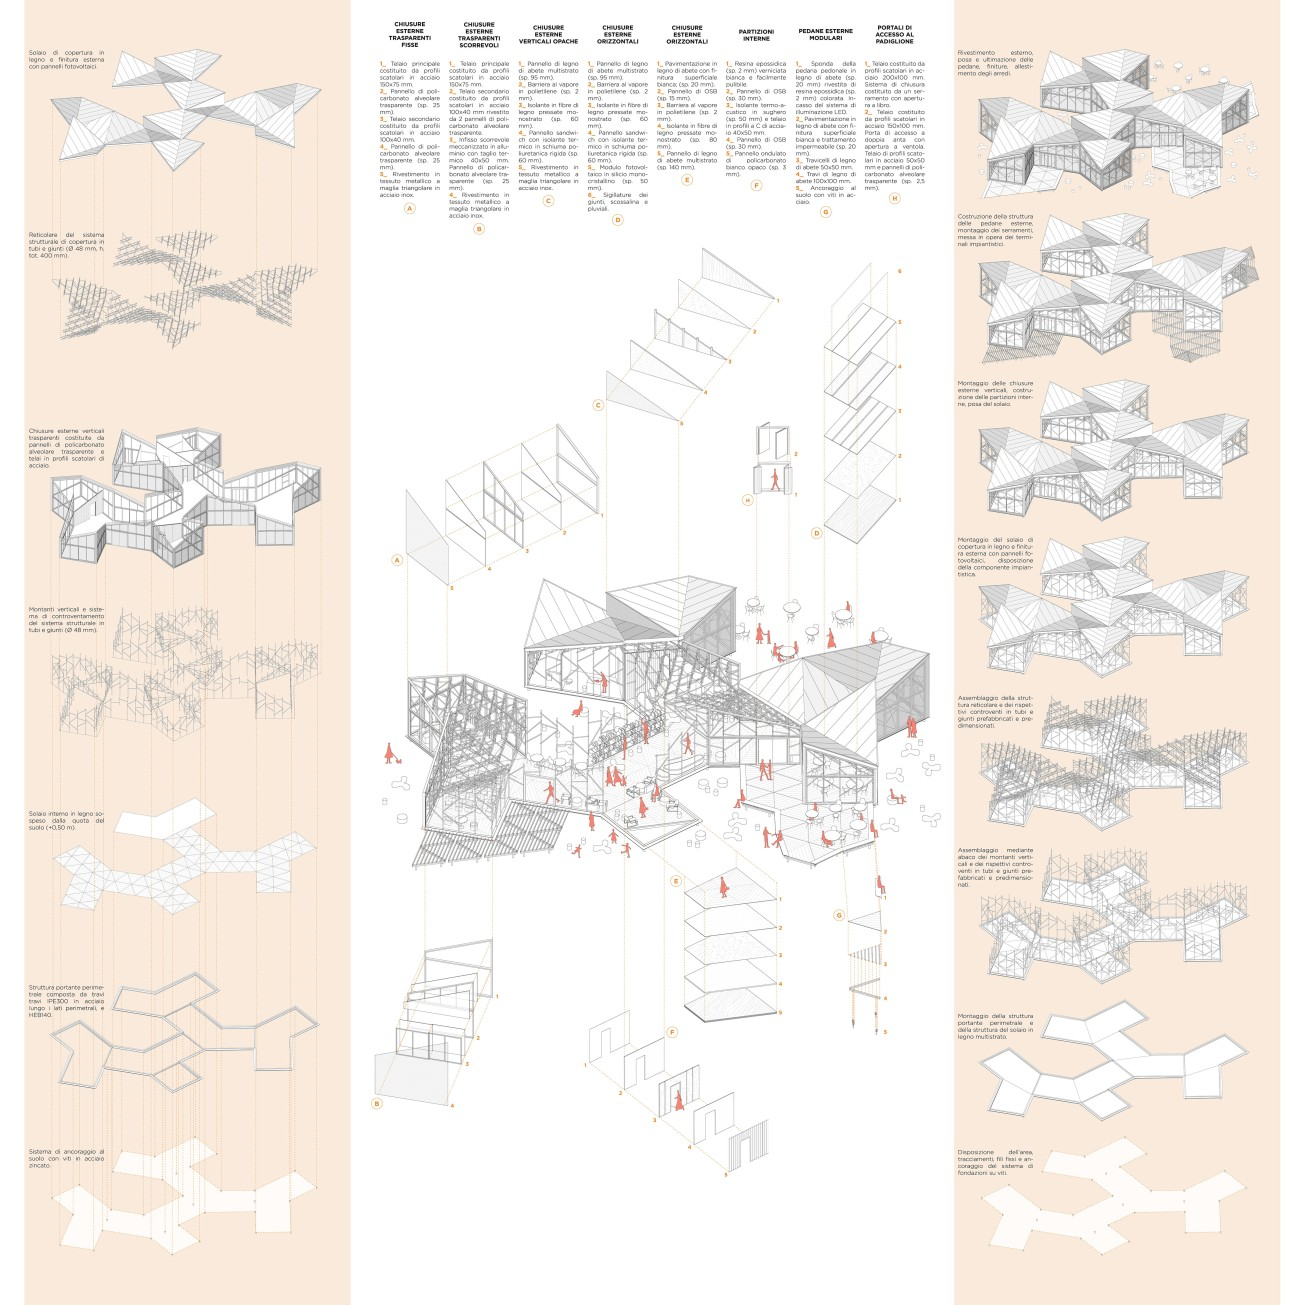 6_MIMESI (construction and technology)_Marco Nucifora_2017_Graduation project_University of Florence (Architecture) - Italy